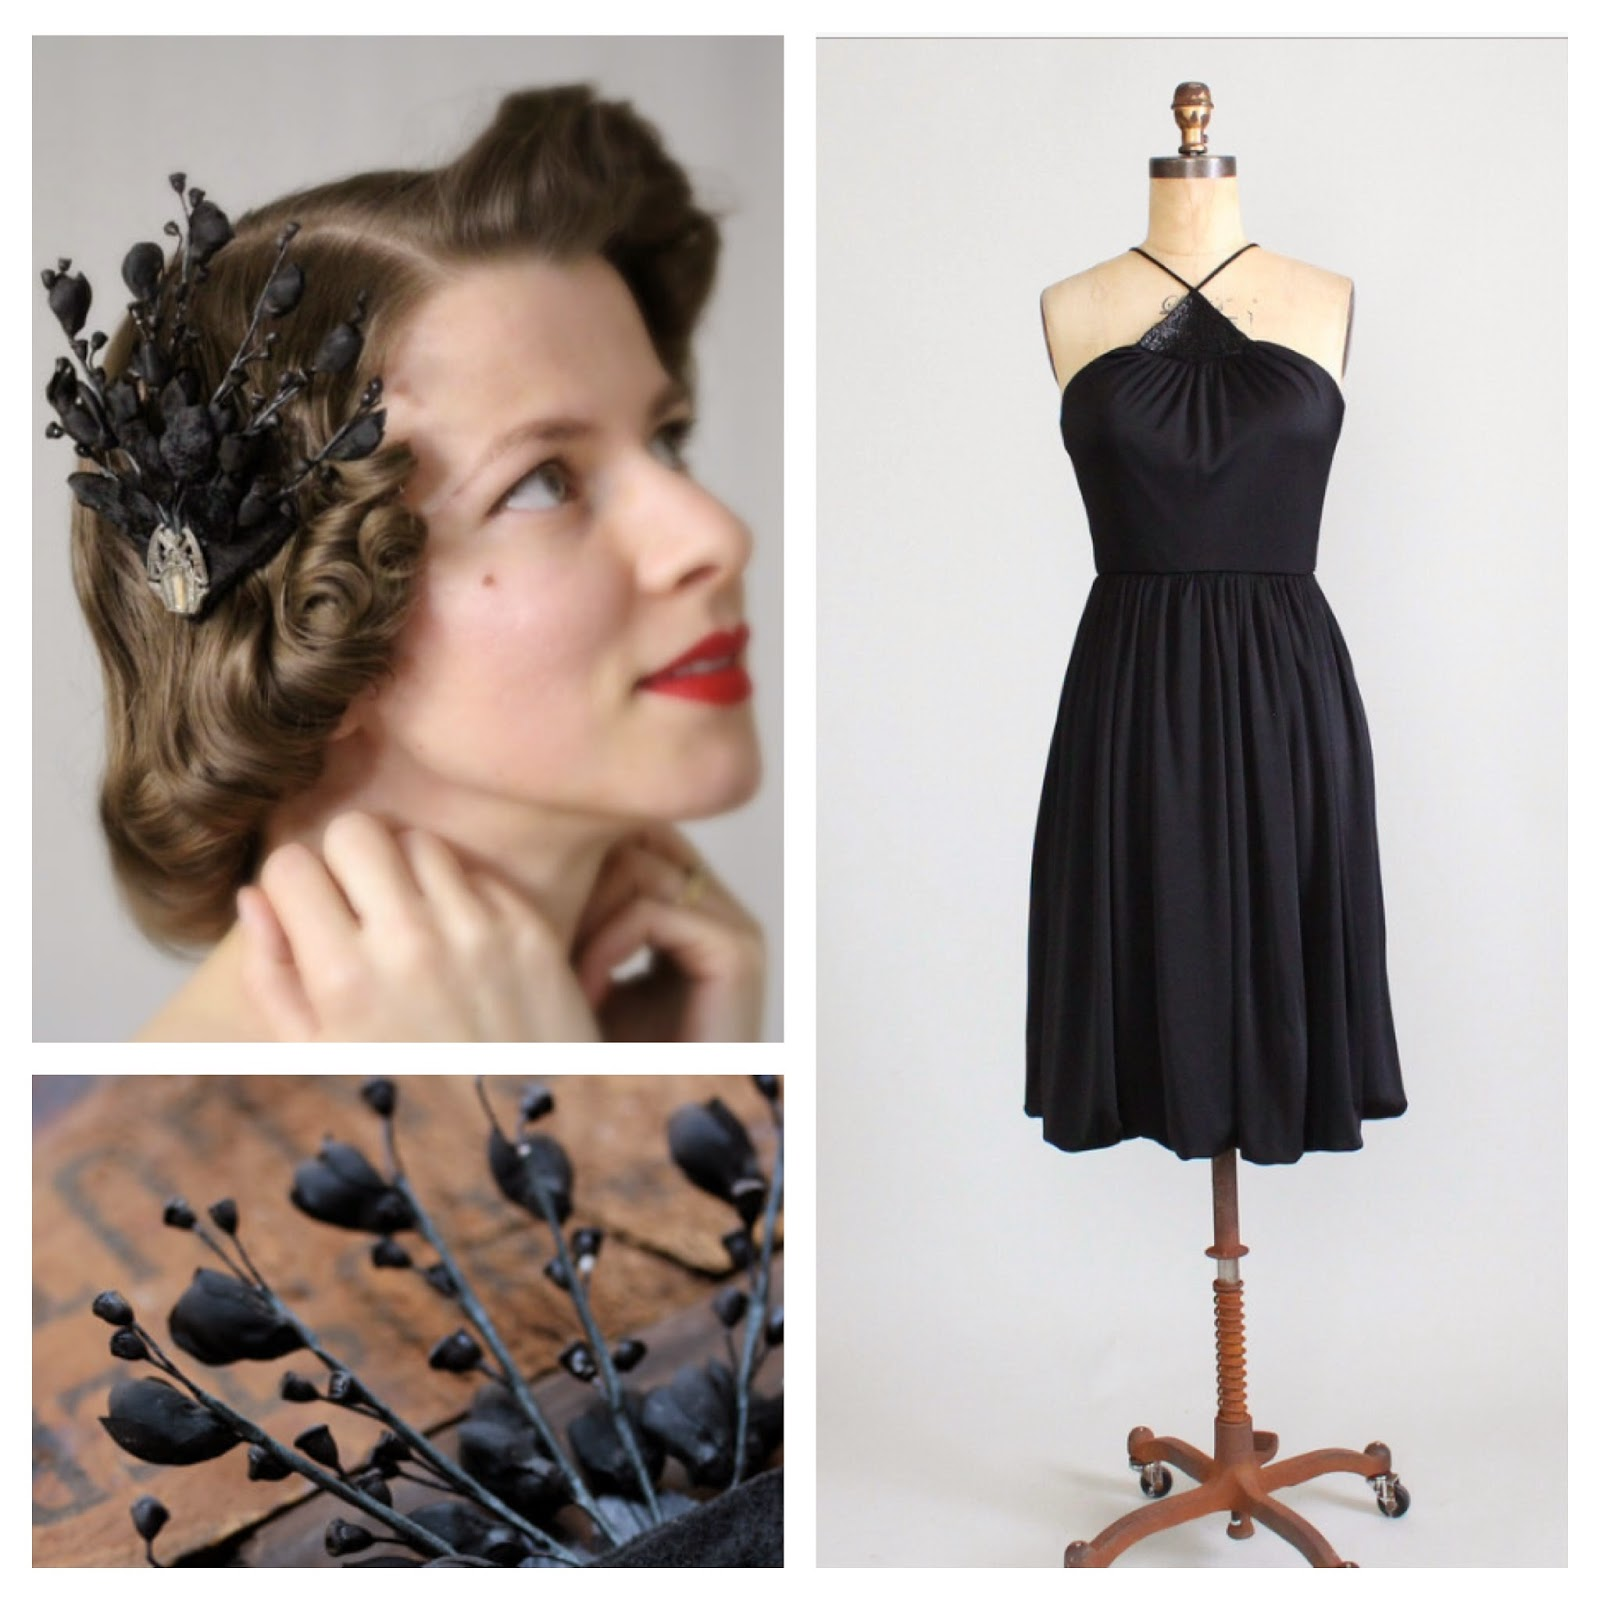 Vintage Evening Wear #vintage #black #dress #1970s #hair